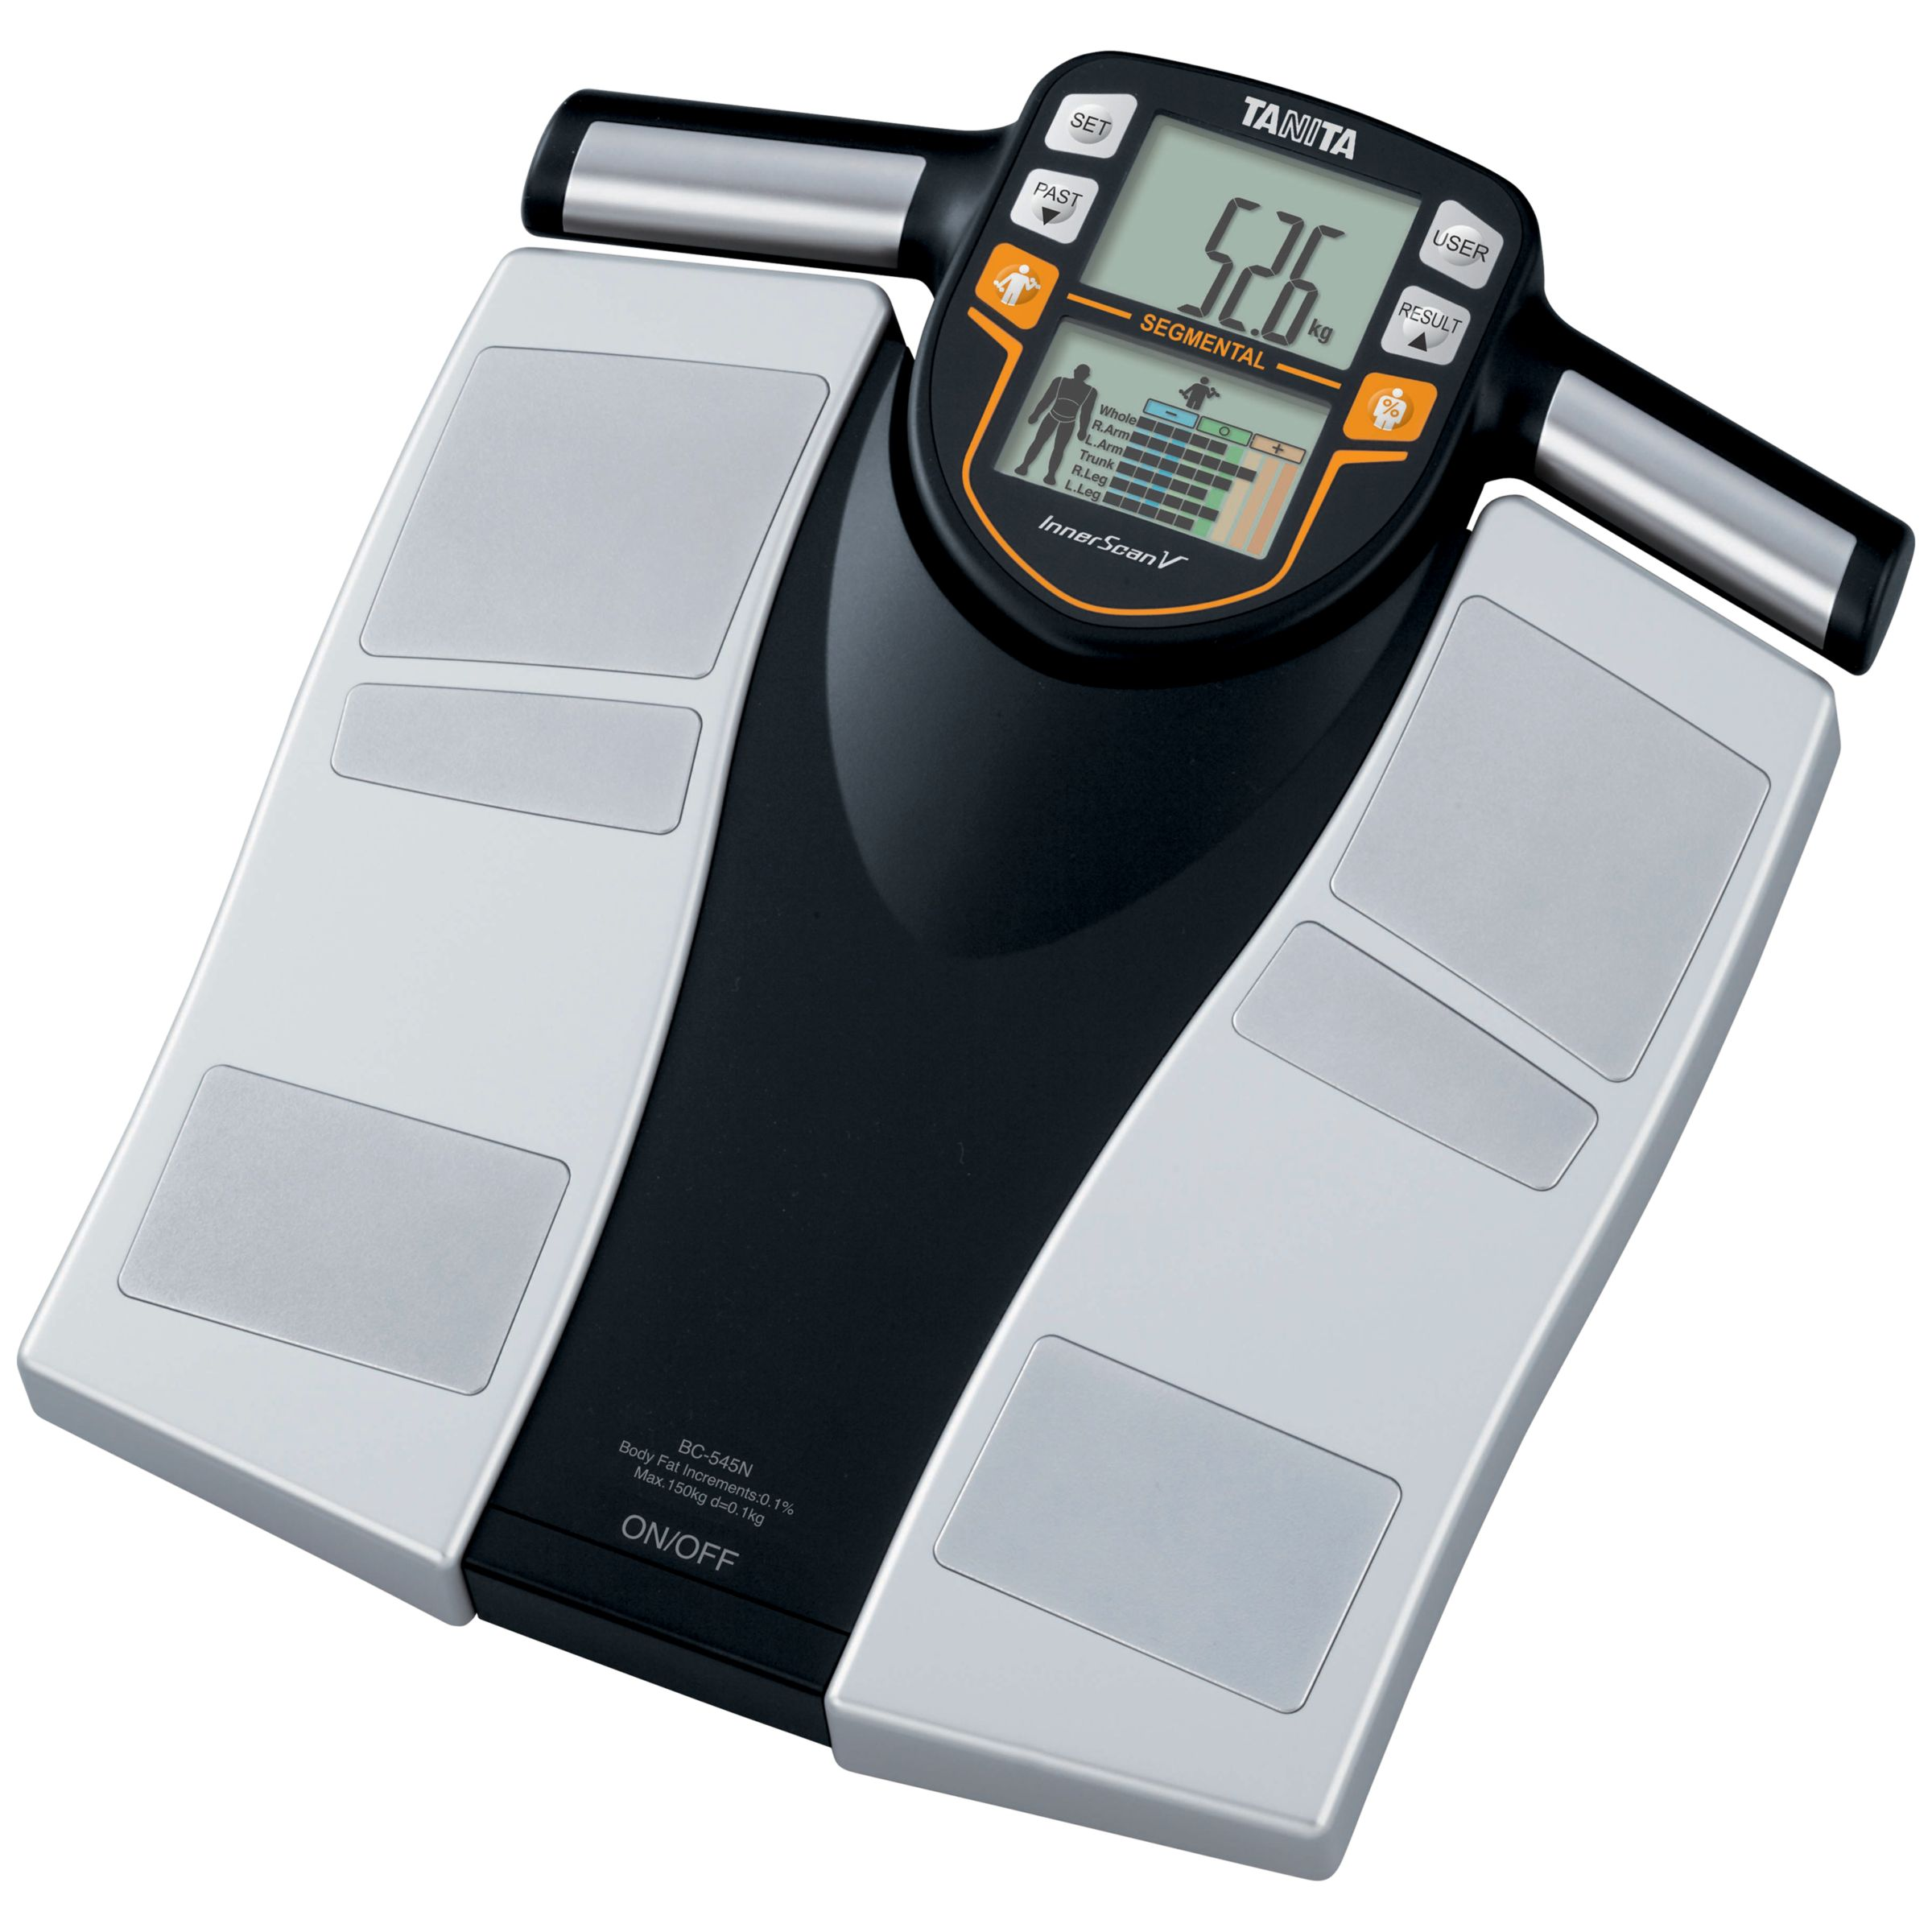 Tanita Tanita BC-545N Segmental Body Composition Monitor